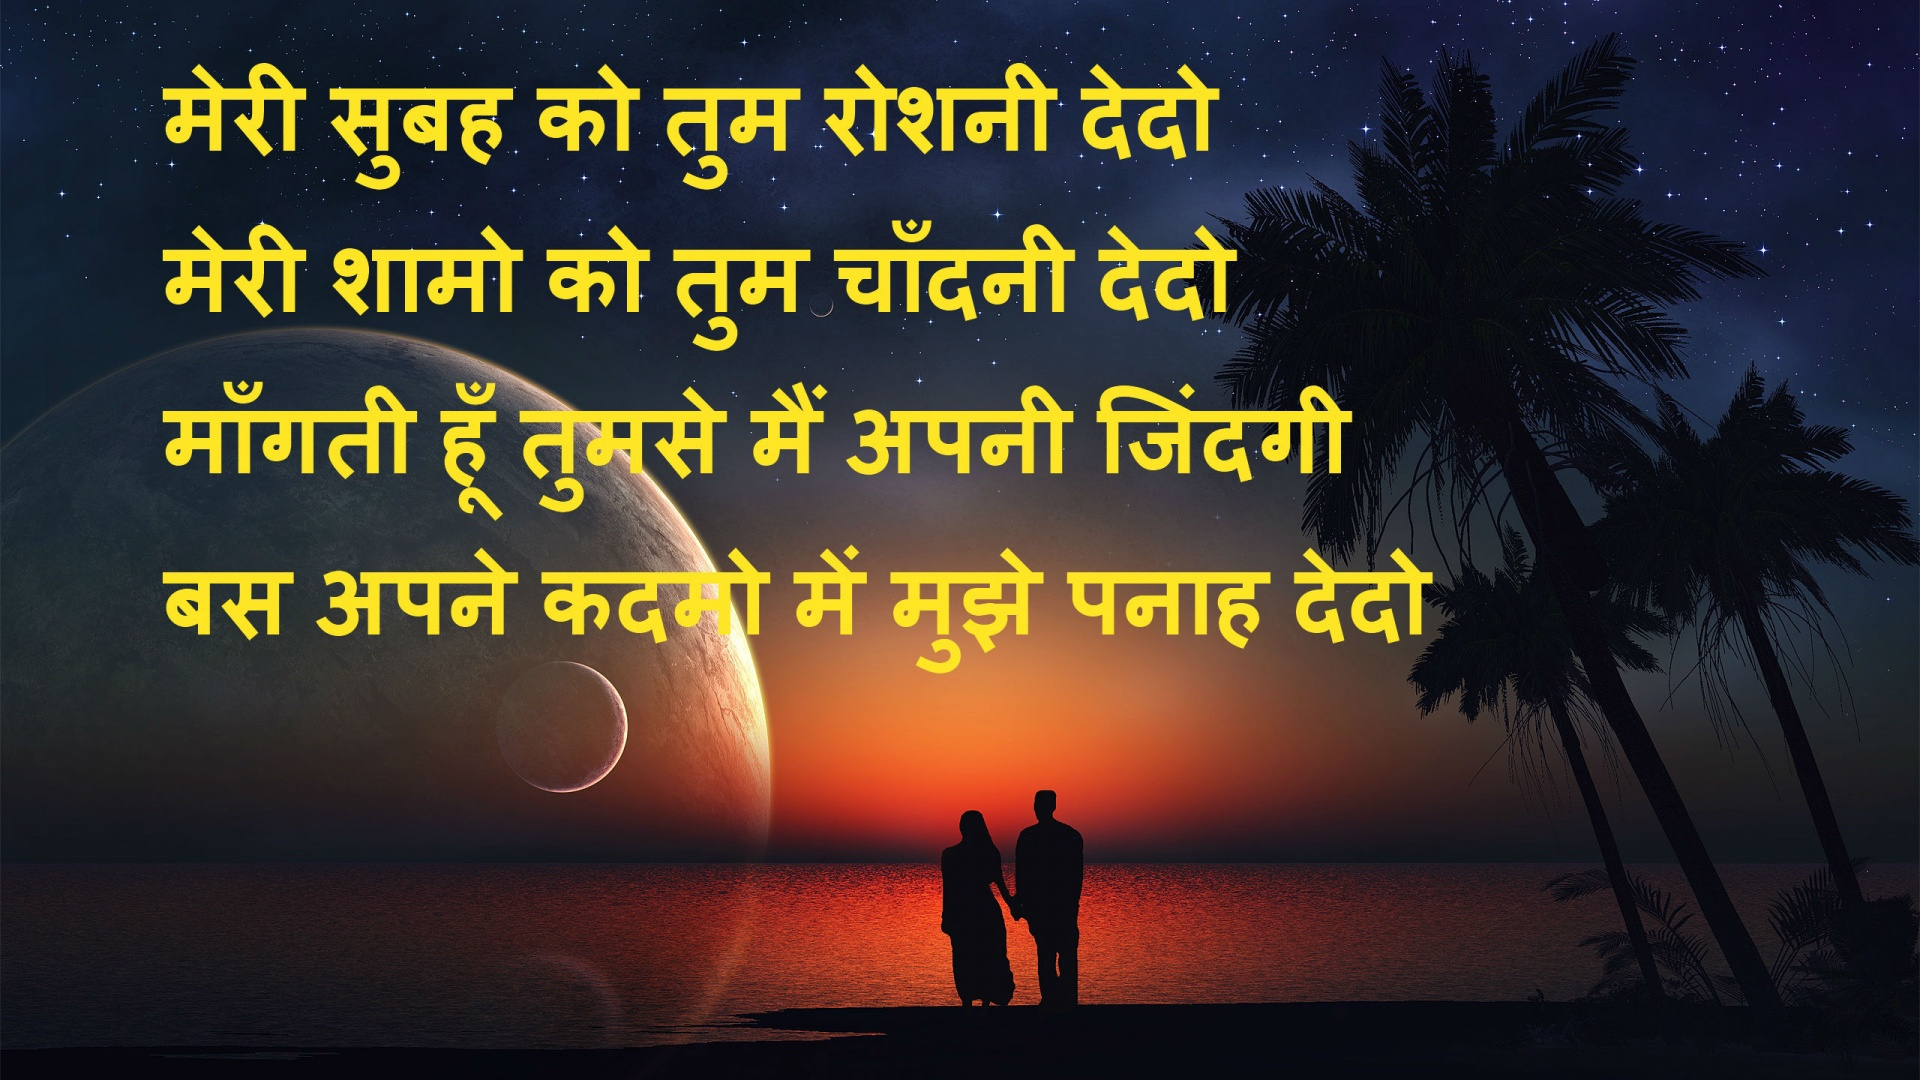 Love Wallpaper Hd With Shayri : Wallpaper Of Hindi Shayari for love - HD Wallpapers ...